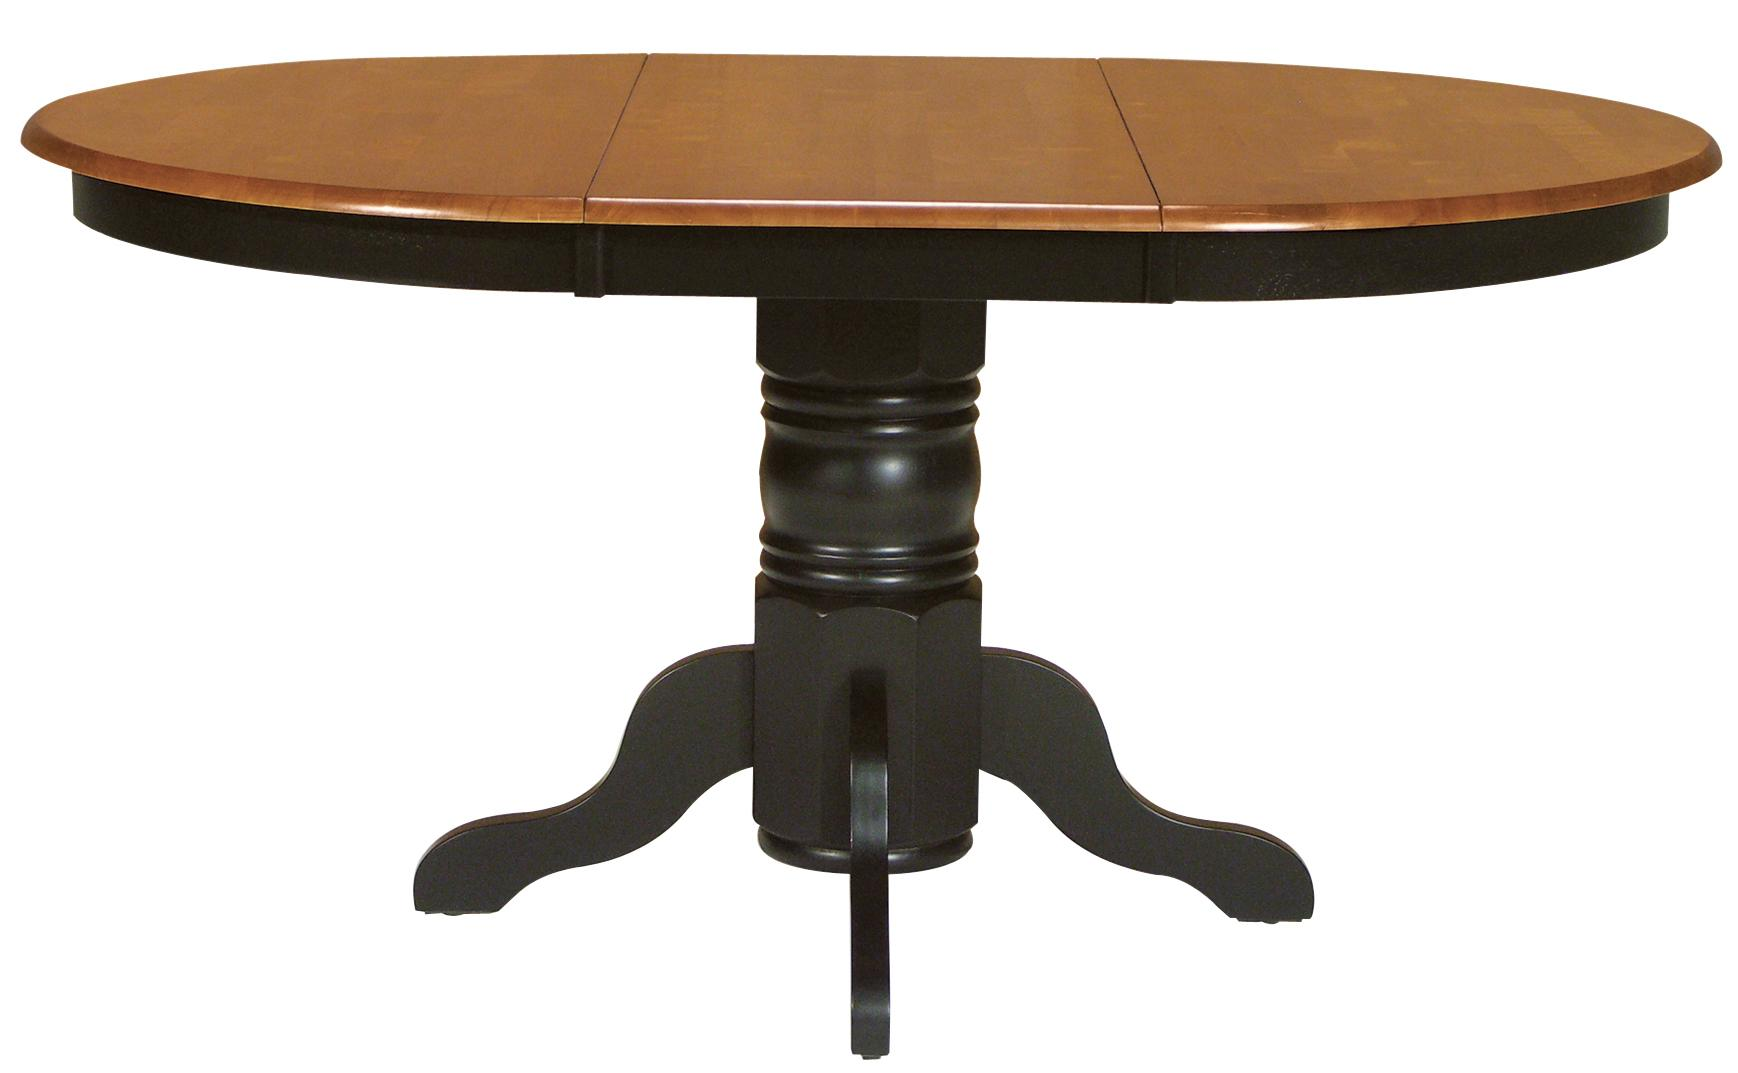 two-toned oval dining table with turned pedestal basewhitewood